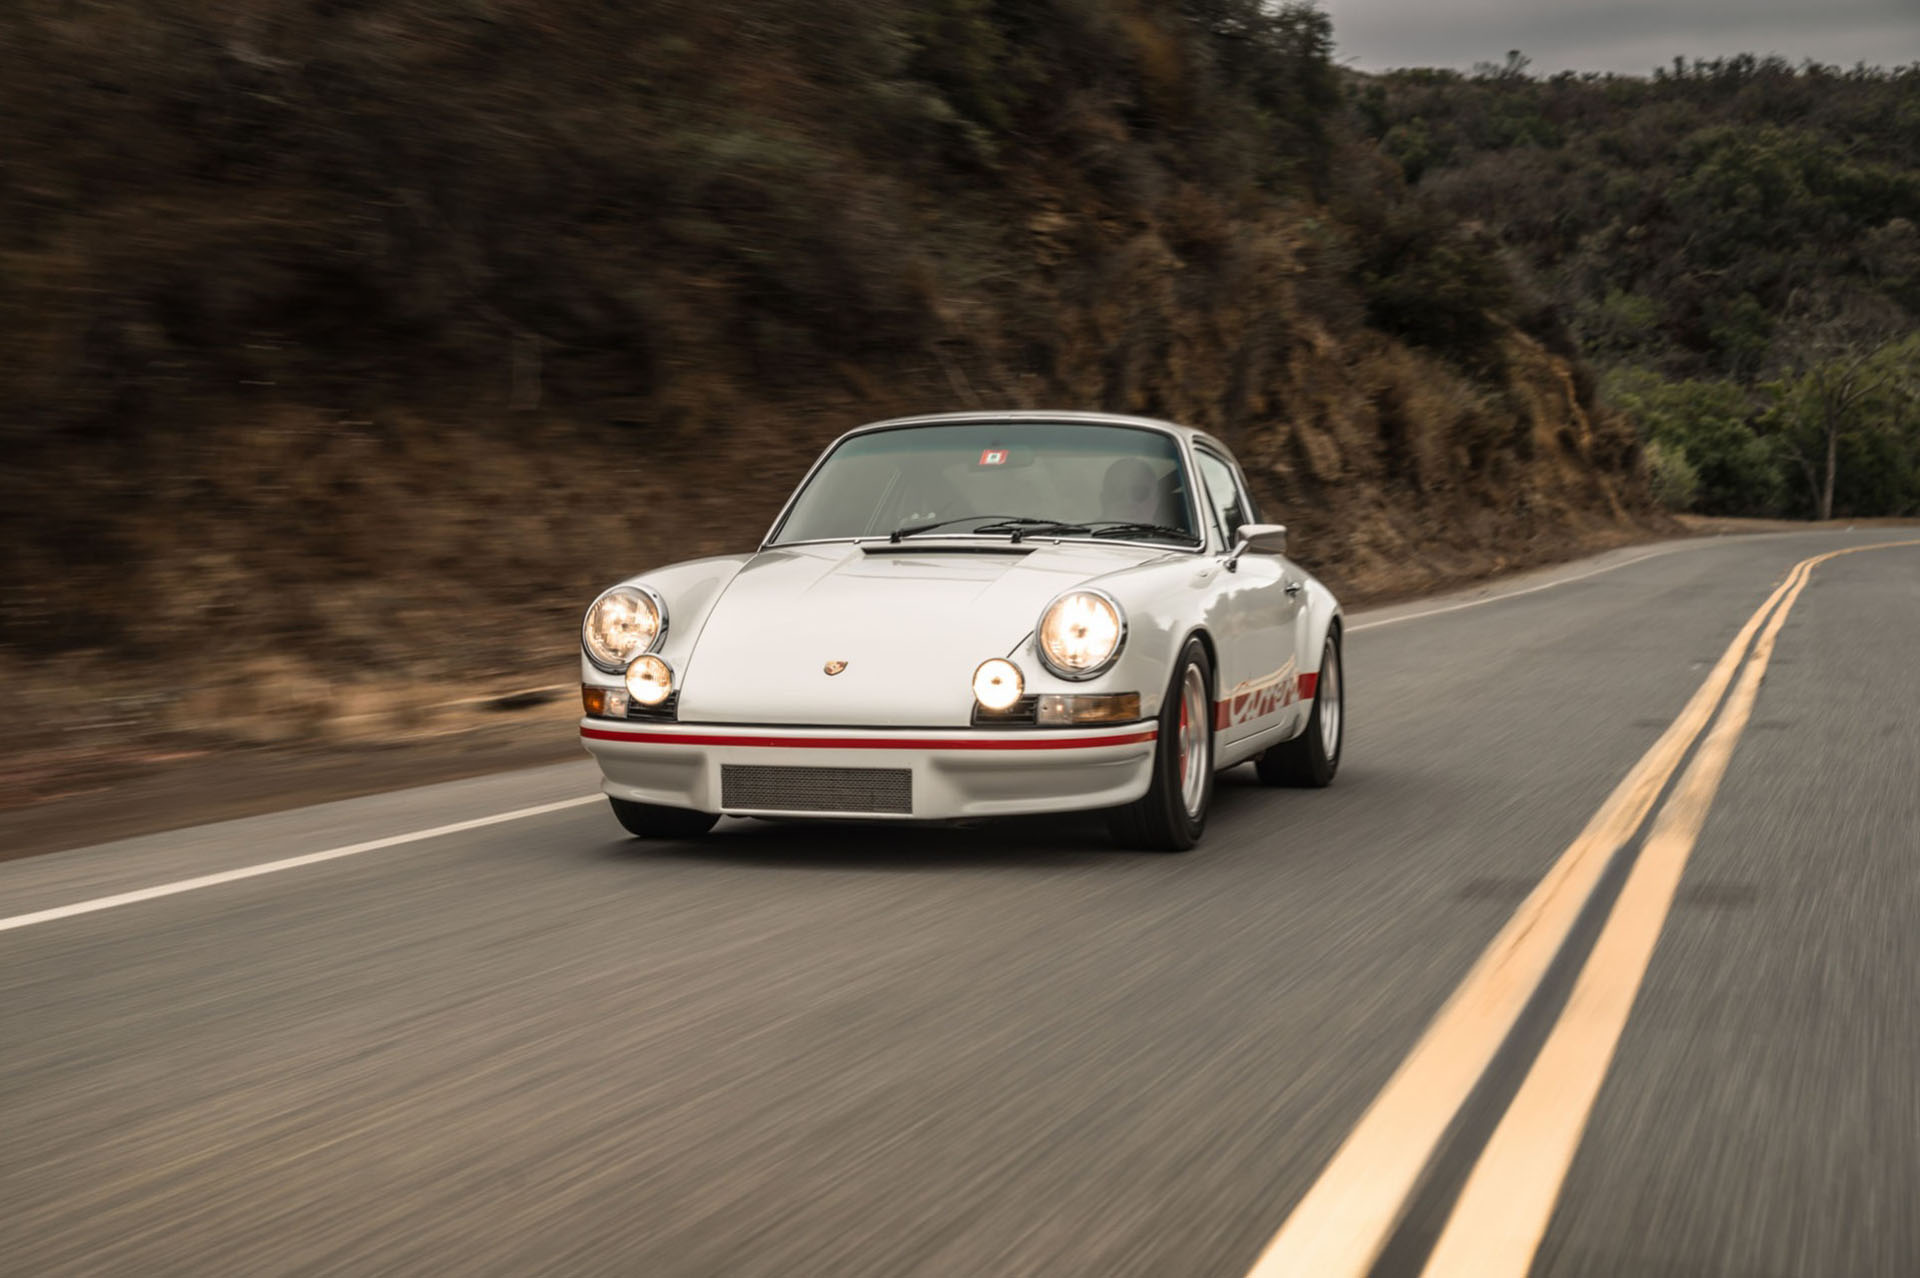 1973 Porsche 911 Carrera Rs Touring Tuned By Ruf For Sale